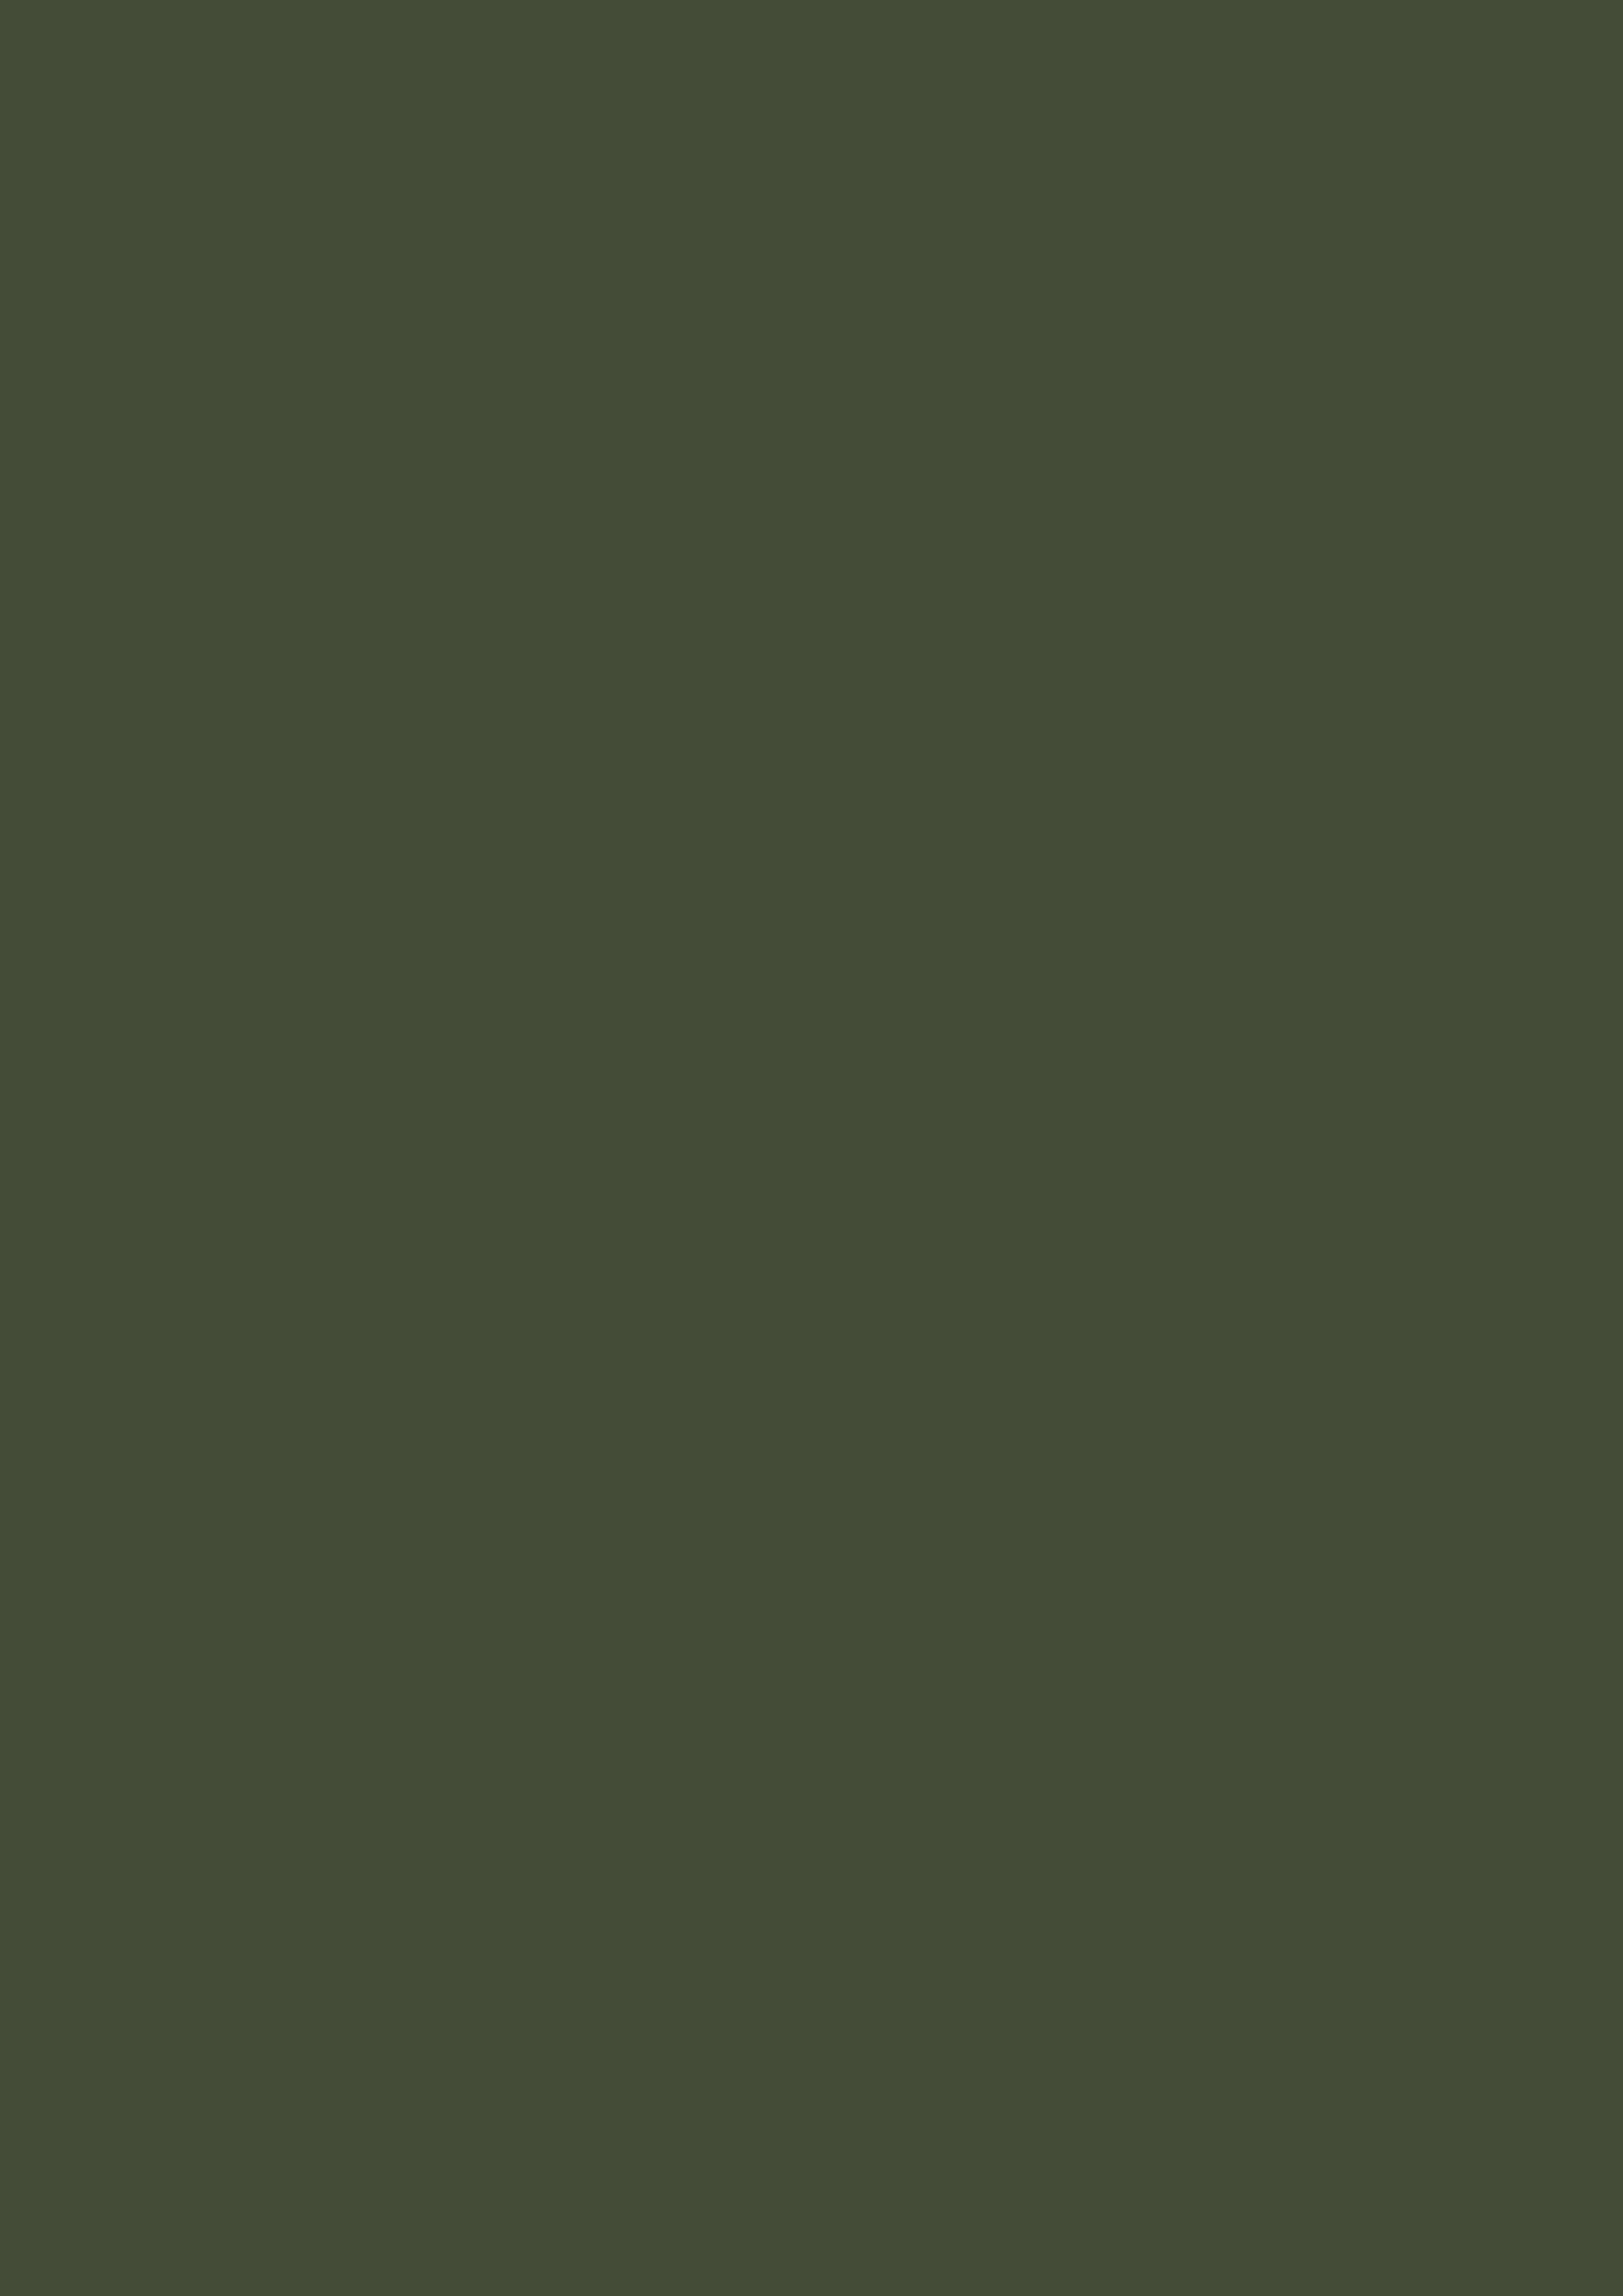 2480x3508 Rifle Green Solid Color Background